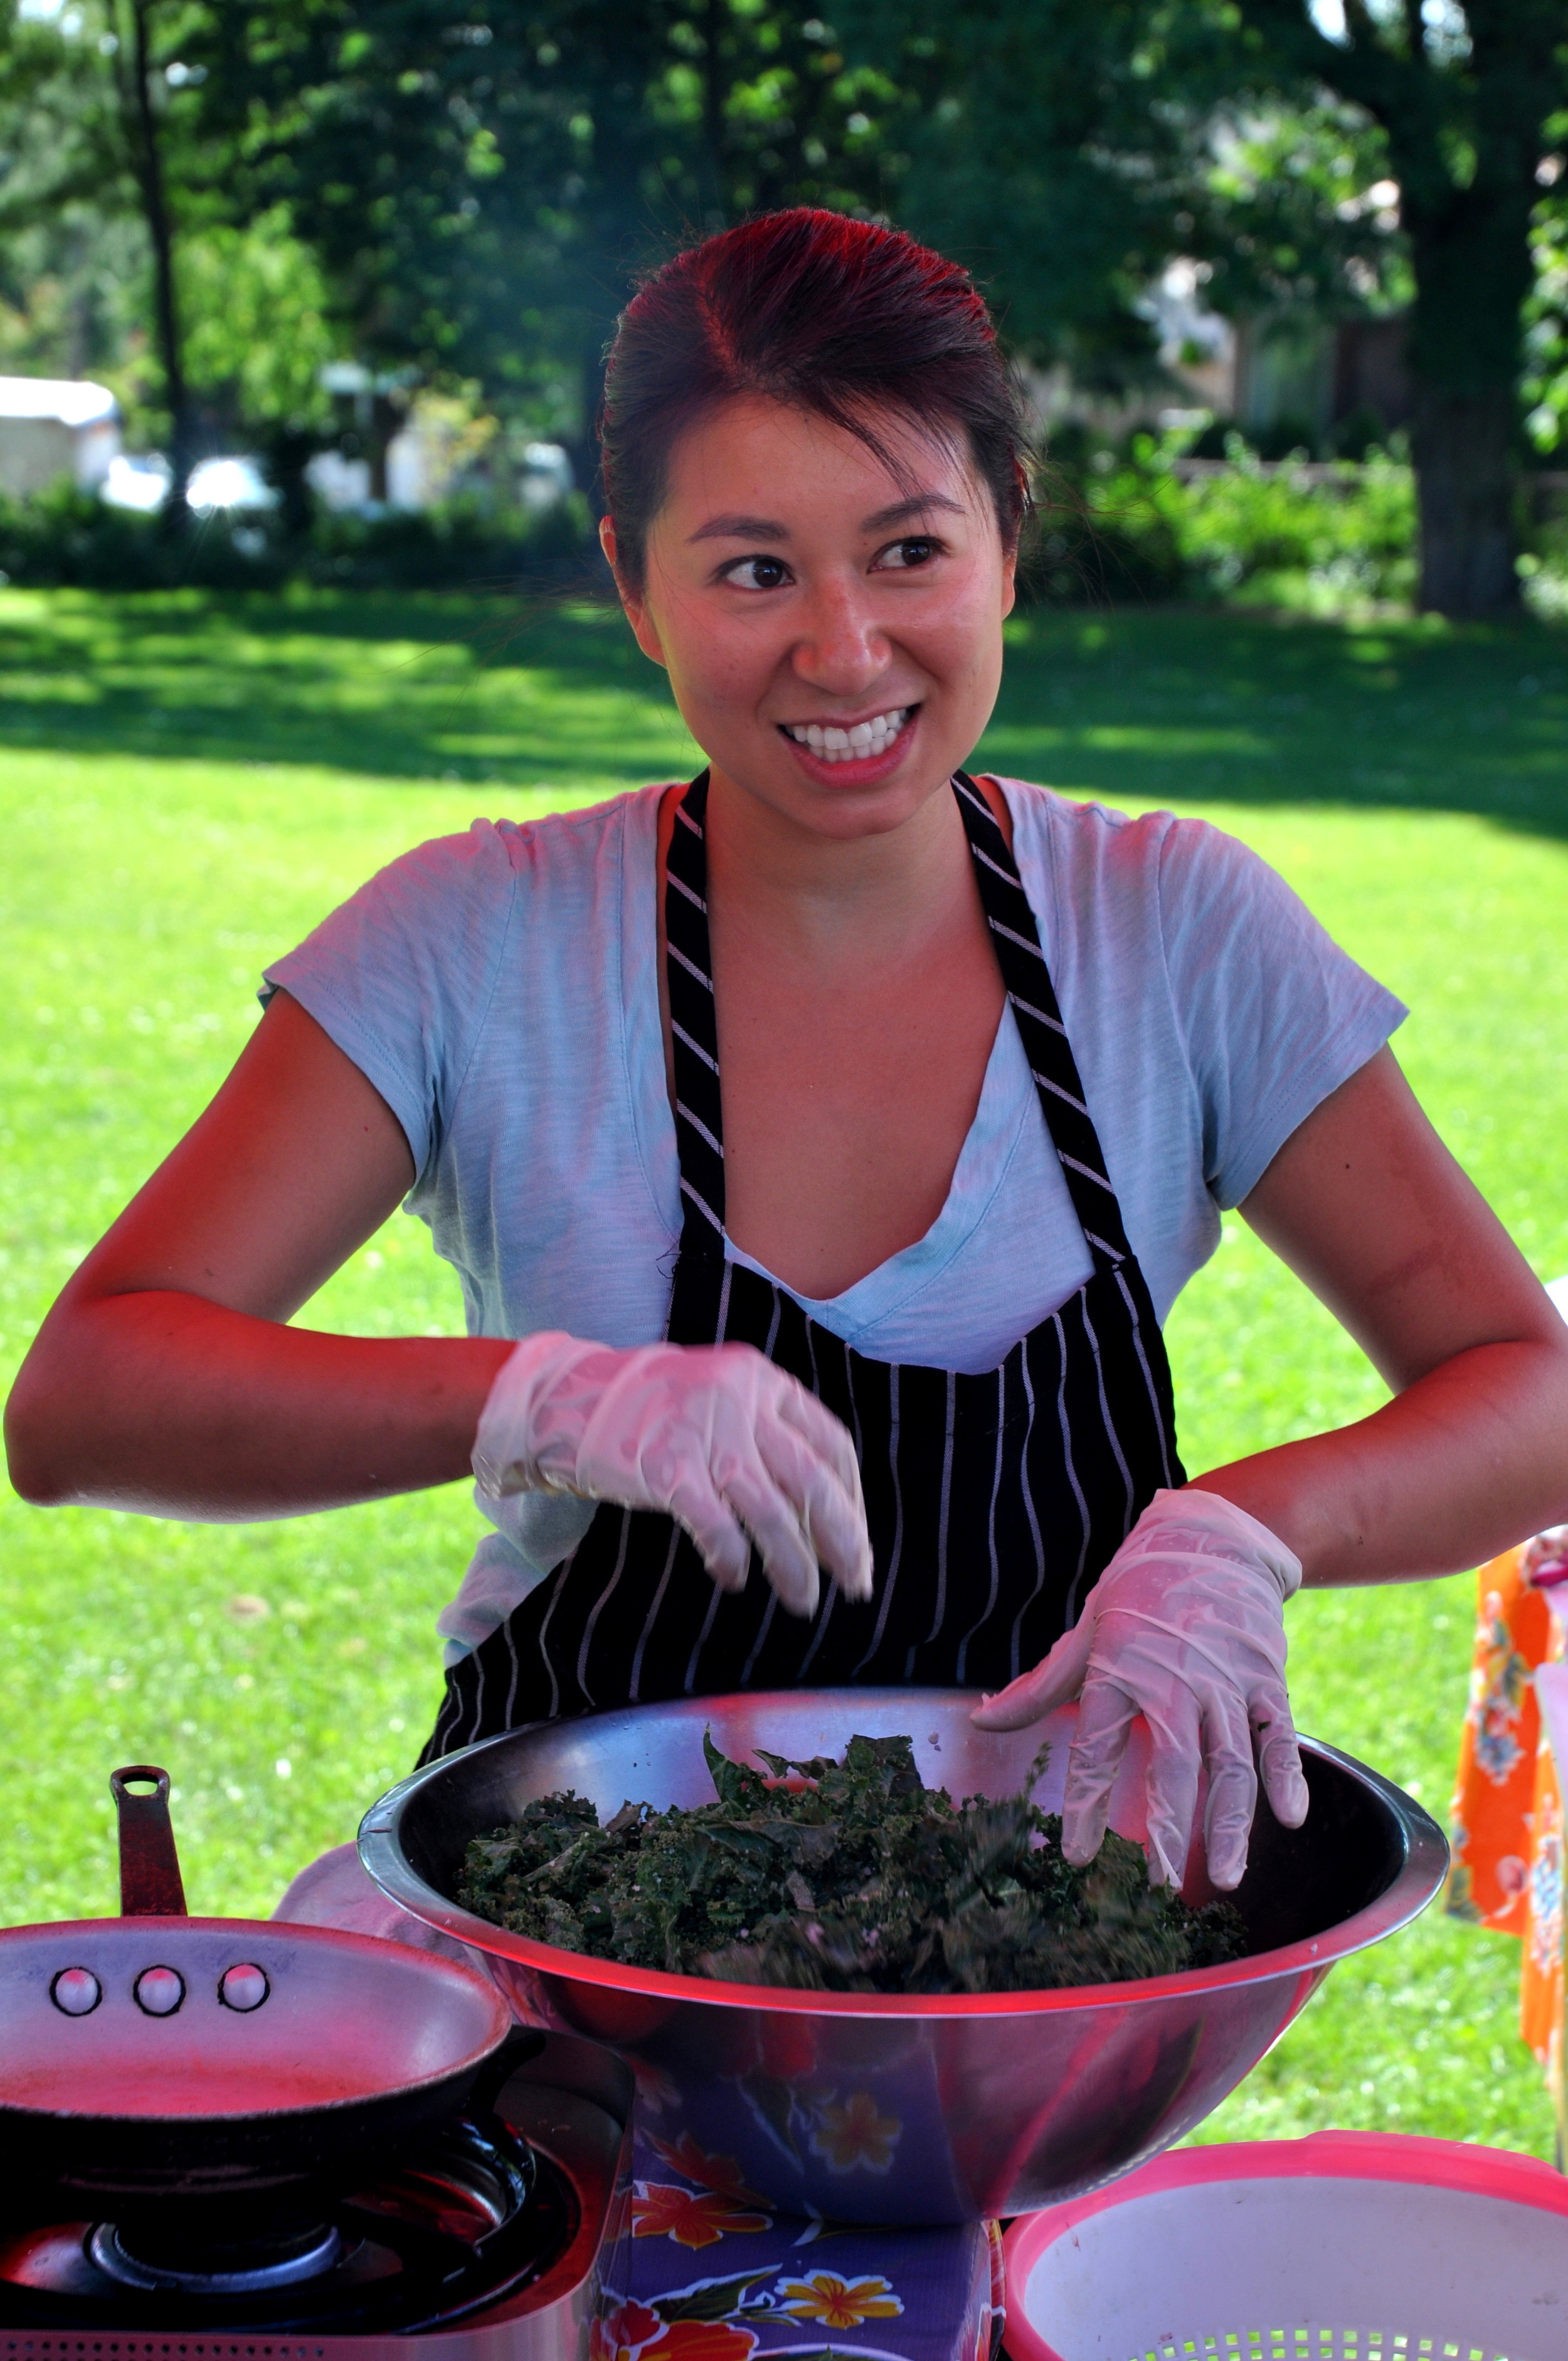 Chef Michelle Nguyen from Joule performing a cooking demonstration. Photo copyright 2012 by Zachary D. Lyons.